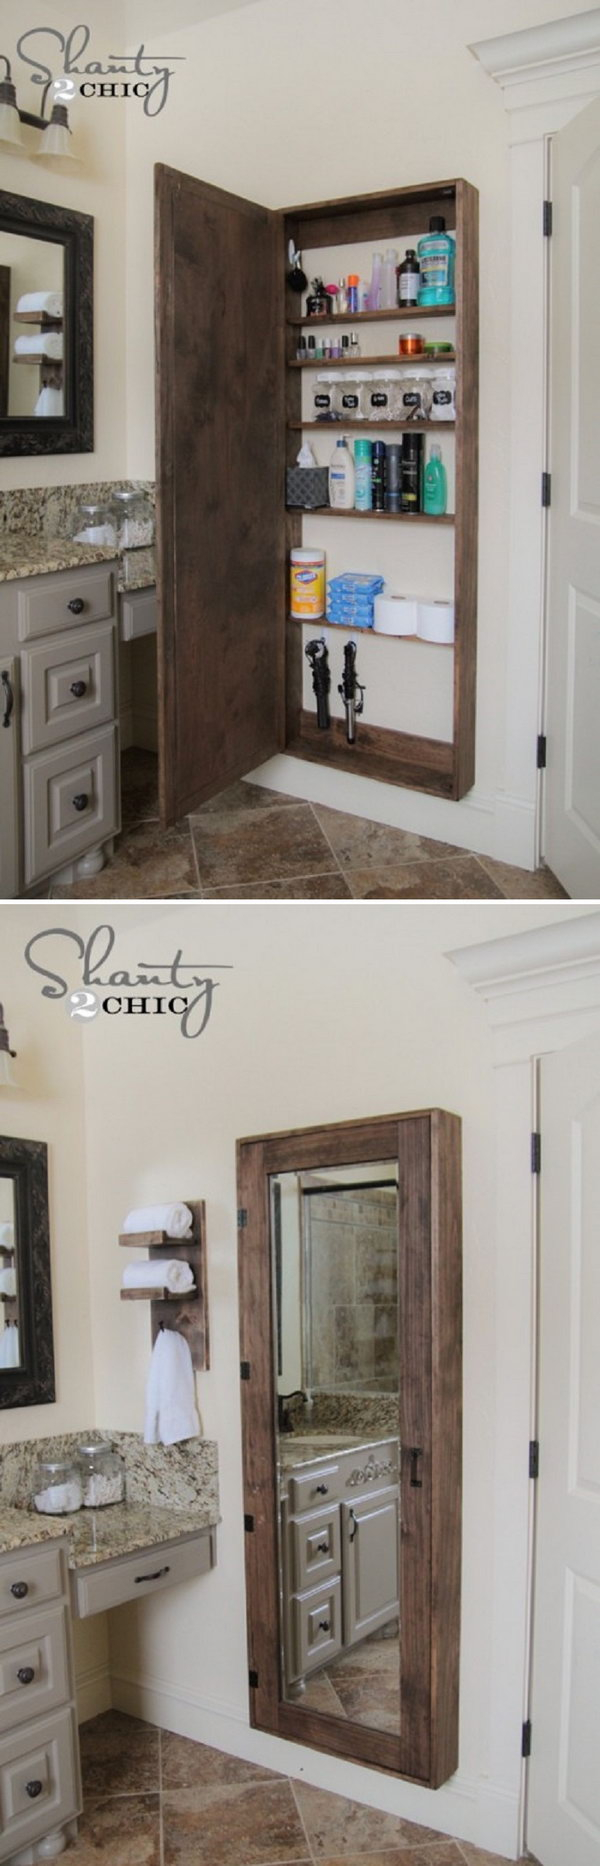 20 Clever Bathroom Storage Ideas Hative with regard to measurements 600 X 1866